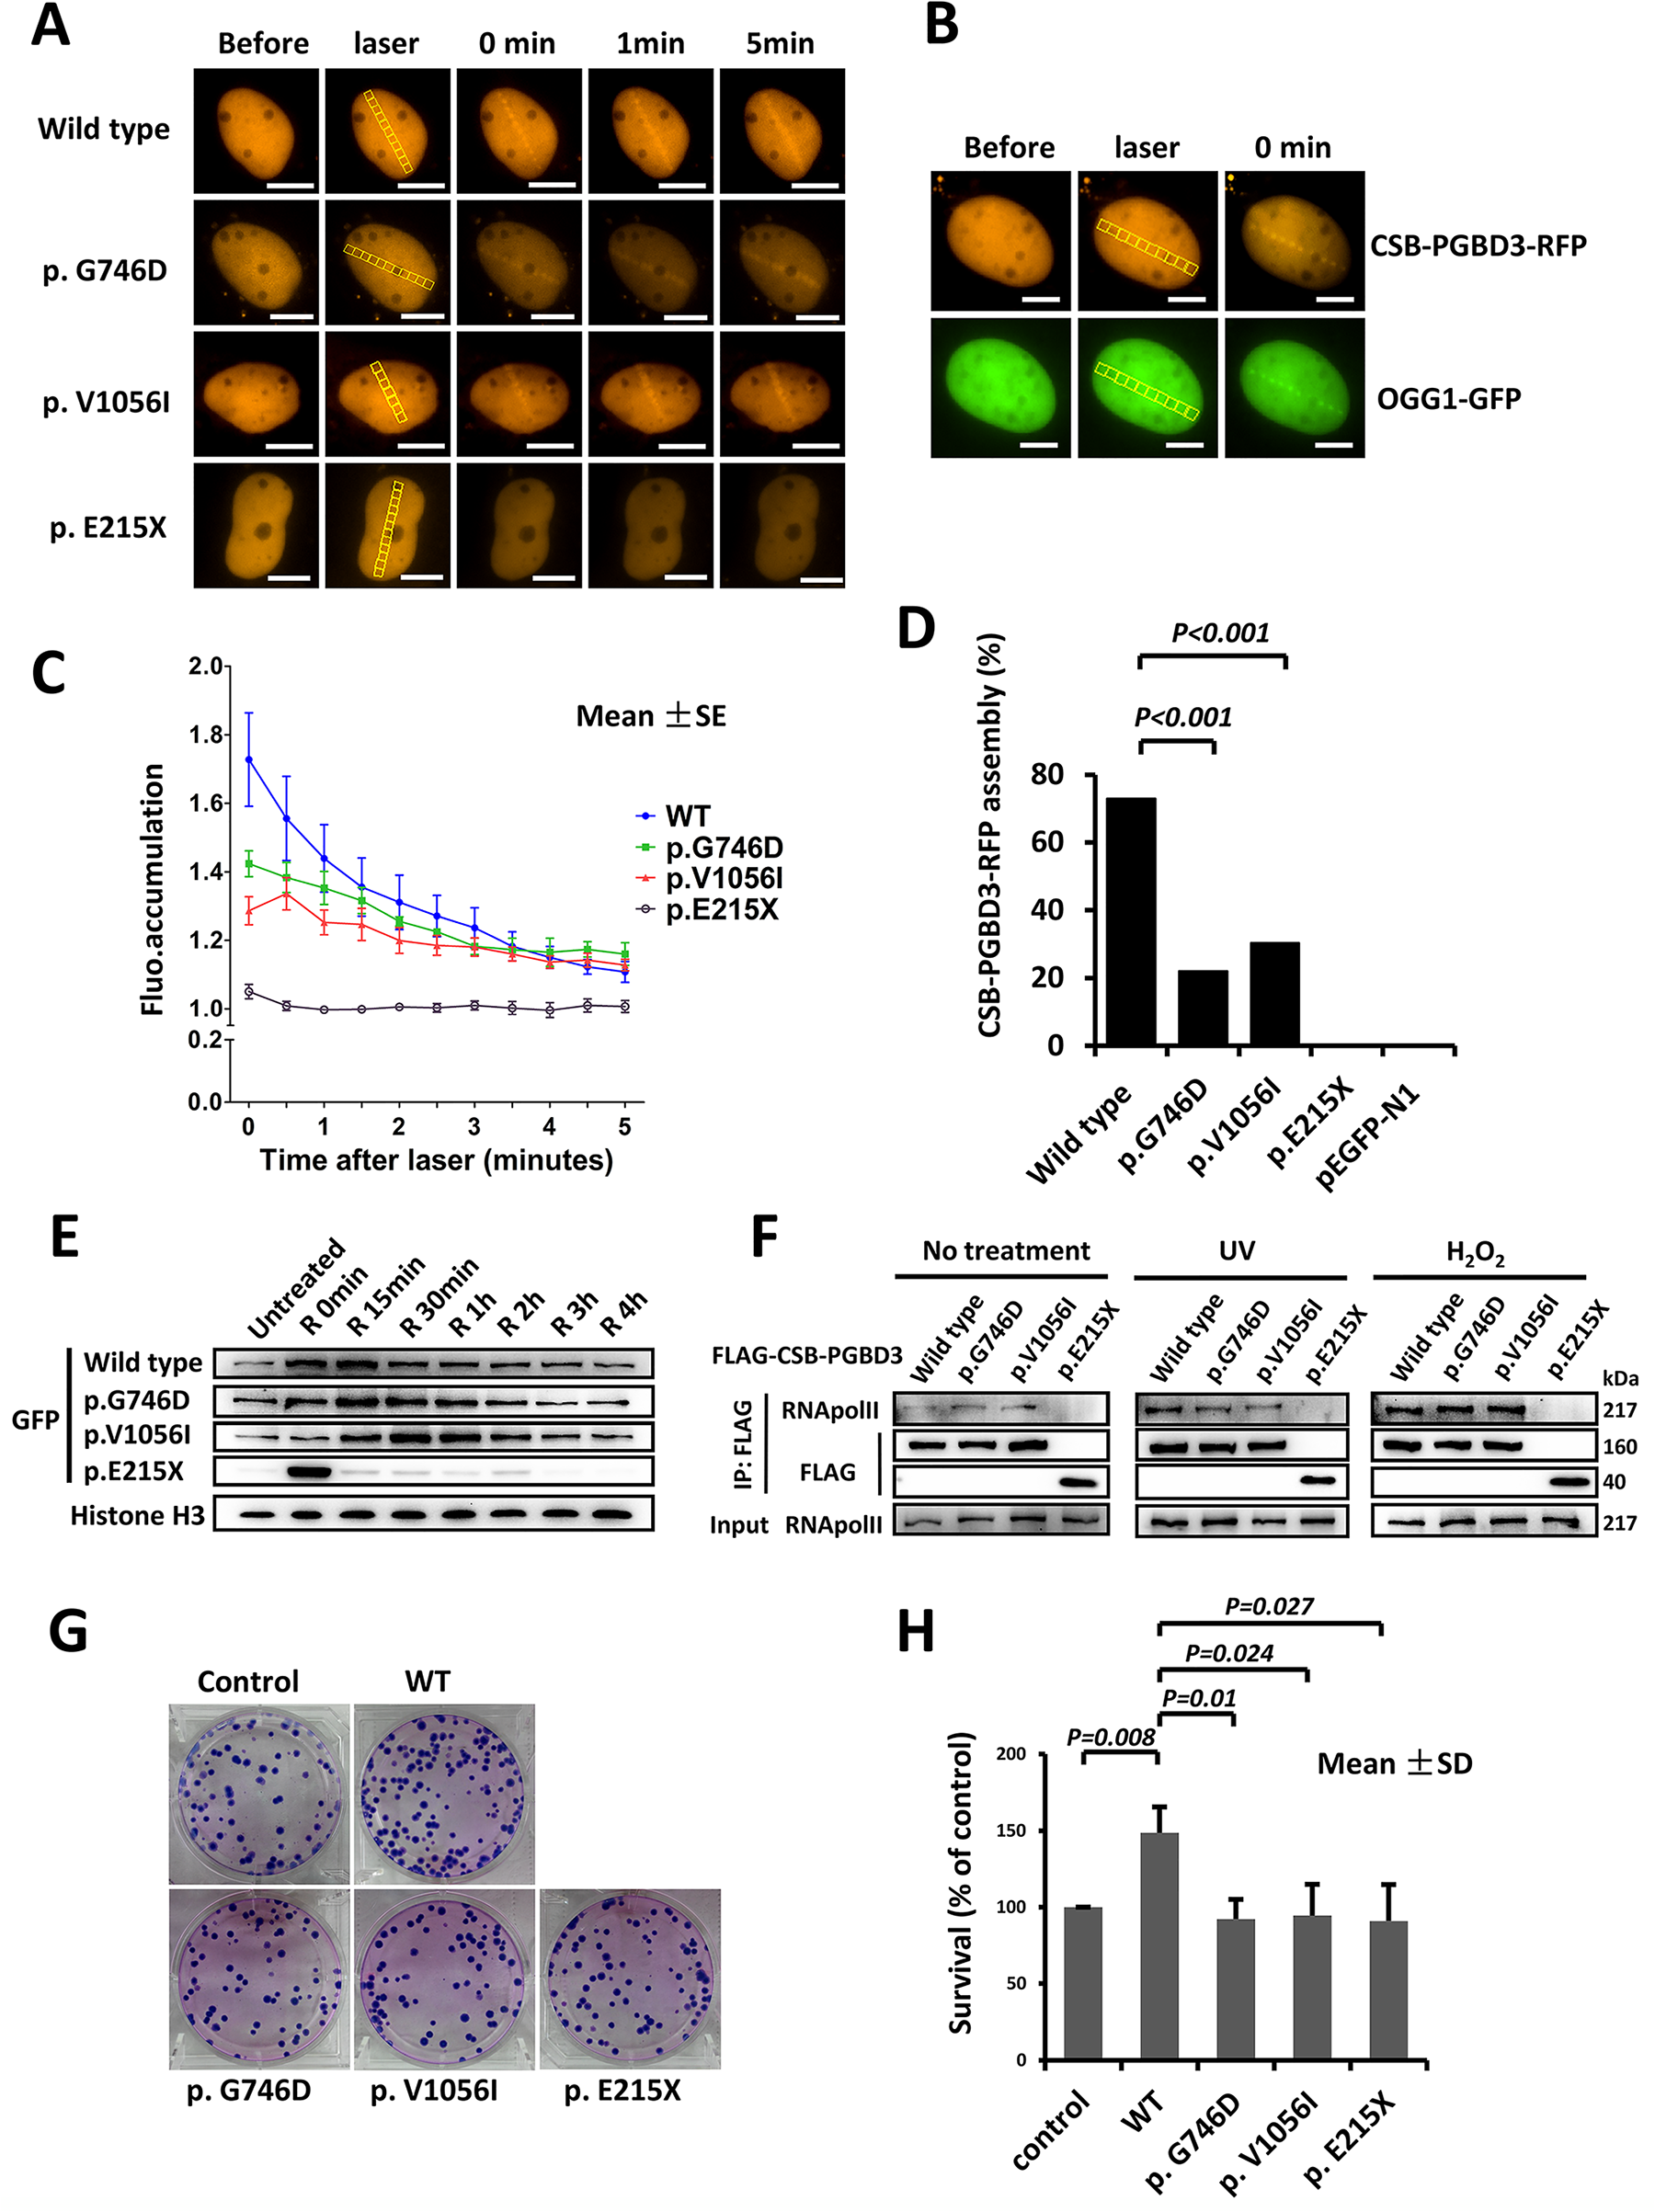 Delayed recruitment of CSB-PGBD3 mutants at DNA lesion.